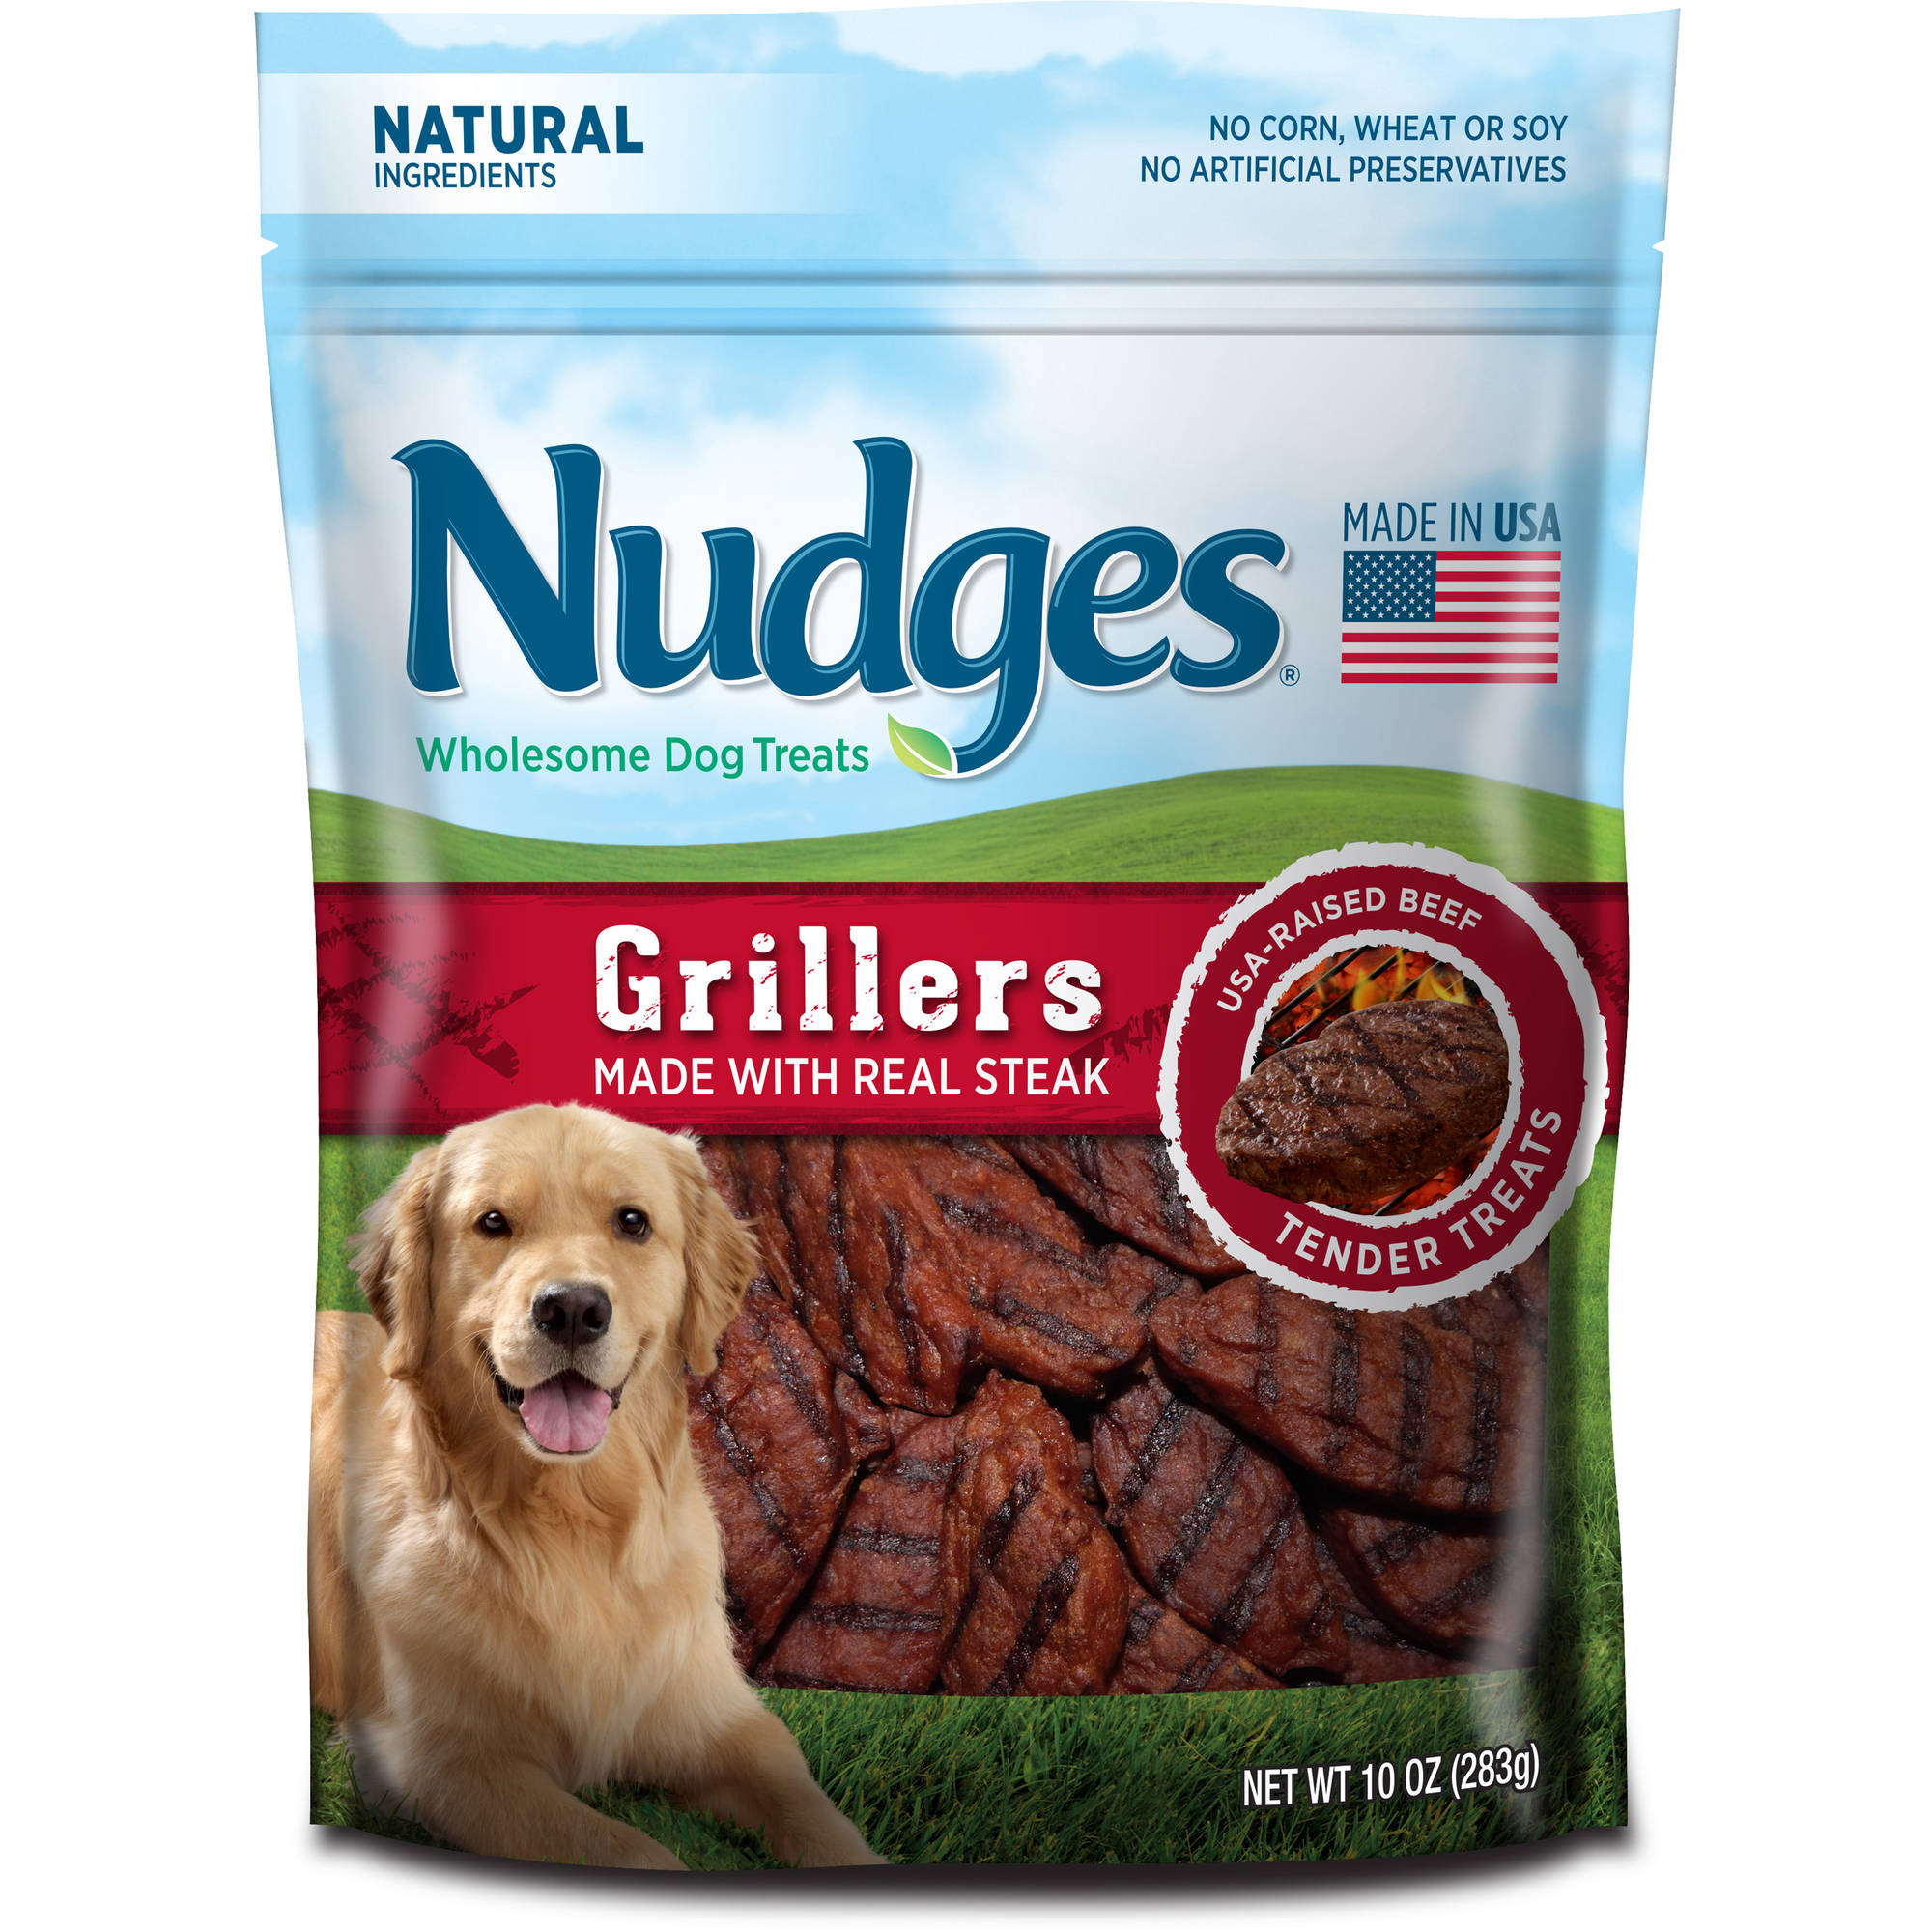 Nudges Wholesome Dog Treats Grillers, 10.0 OZ by Tyson Pet Products, Inc.